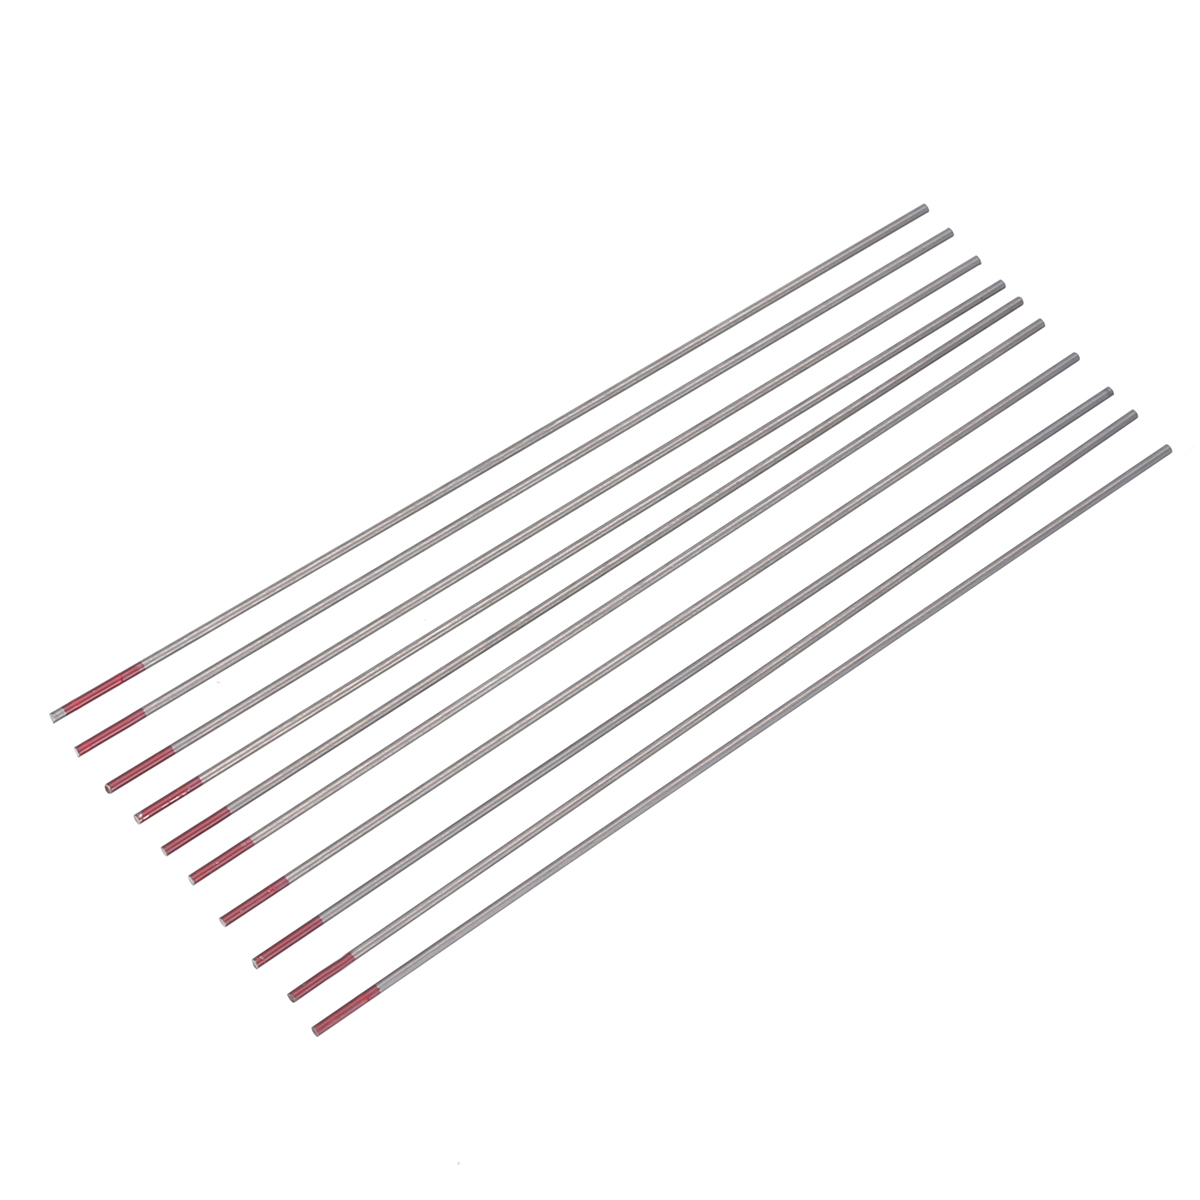 10Pcs TIG Welding Tungsten Electrodes Rod Mayitr 2% Thoriated Tungsten Electrode 1.6x150mm WT20 Red for Welding Carbon Steel